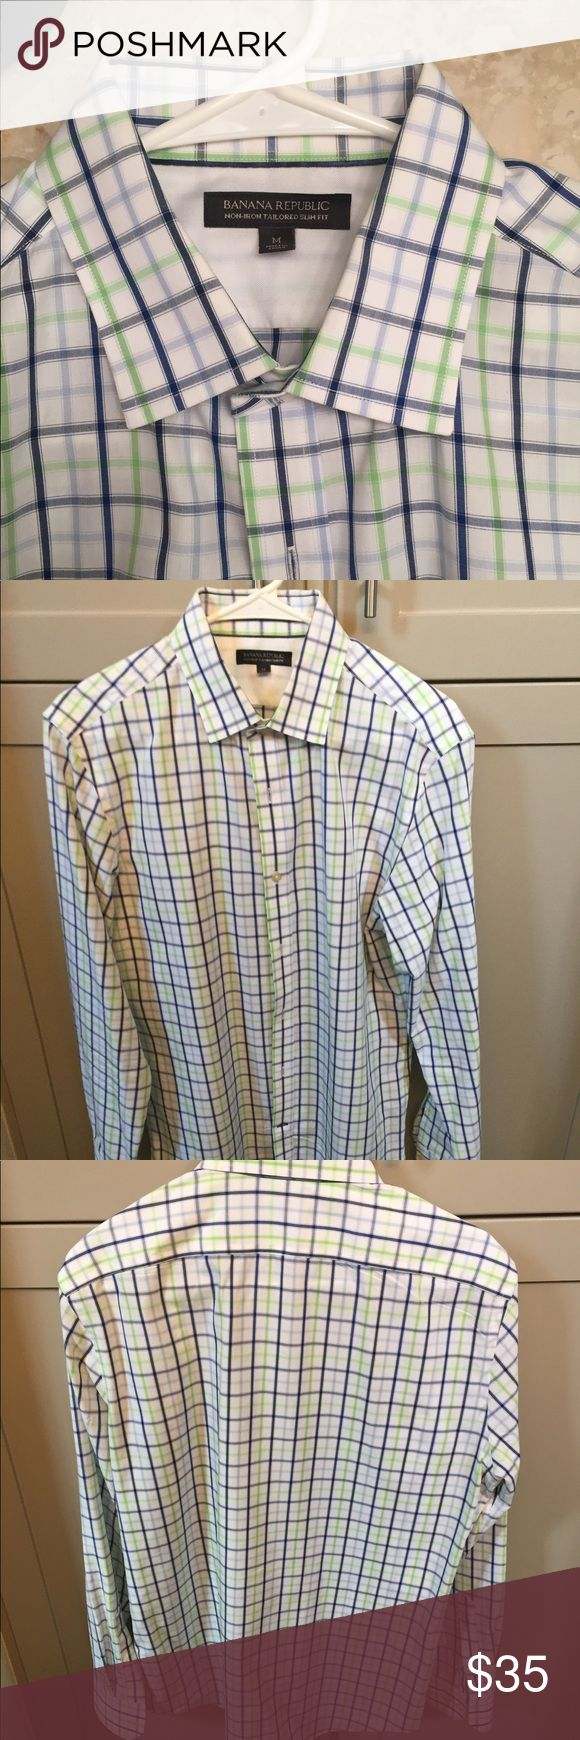 Banana Republic Slim Fit Men's Shirt Banana Republic Non-Iron Tailored Slim Fit Shirt Men's Dress Shirt.  Like new, barely worn. Size Medium Banana Republic Shirts Dress Shirts